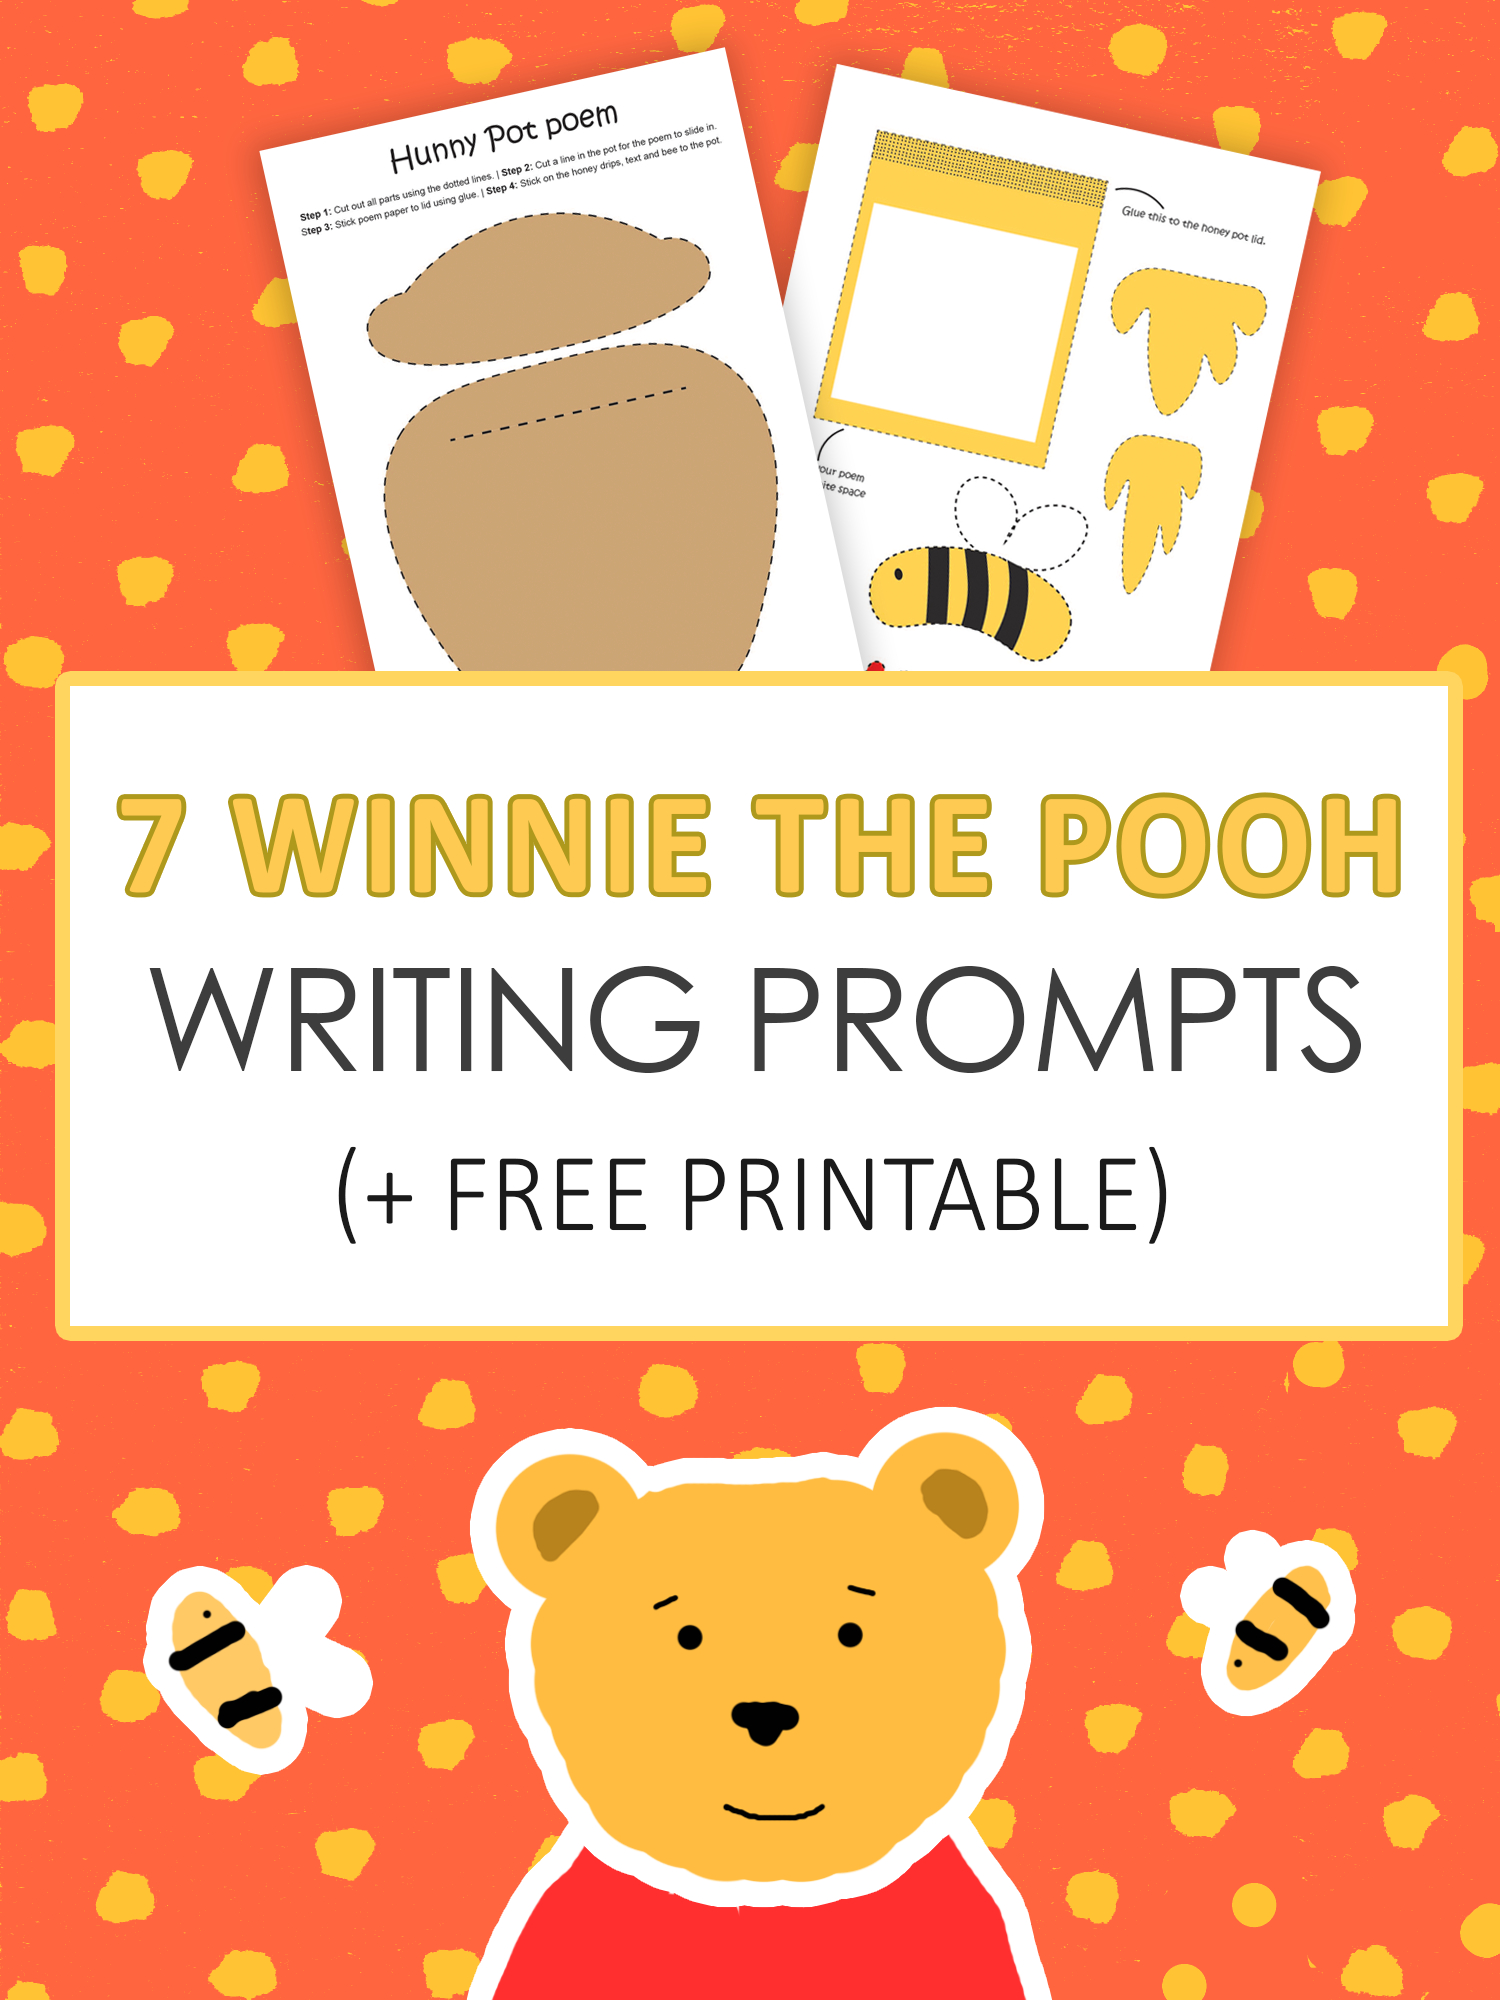 7 Winnie The Pooh Writing Prompts | Learning Activities | Winnie The - Free Printable Disney Stories